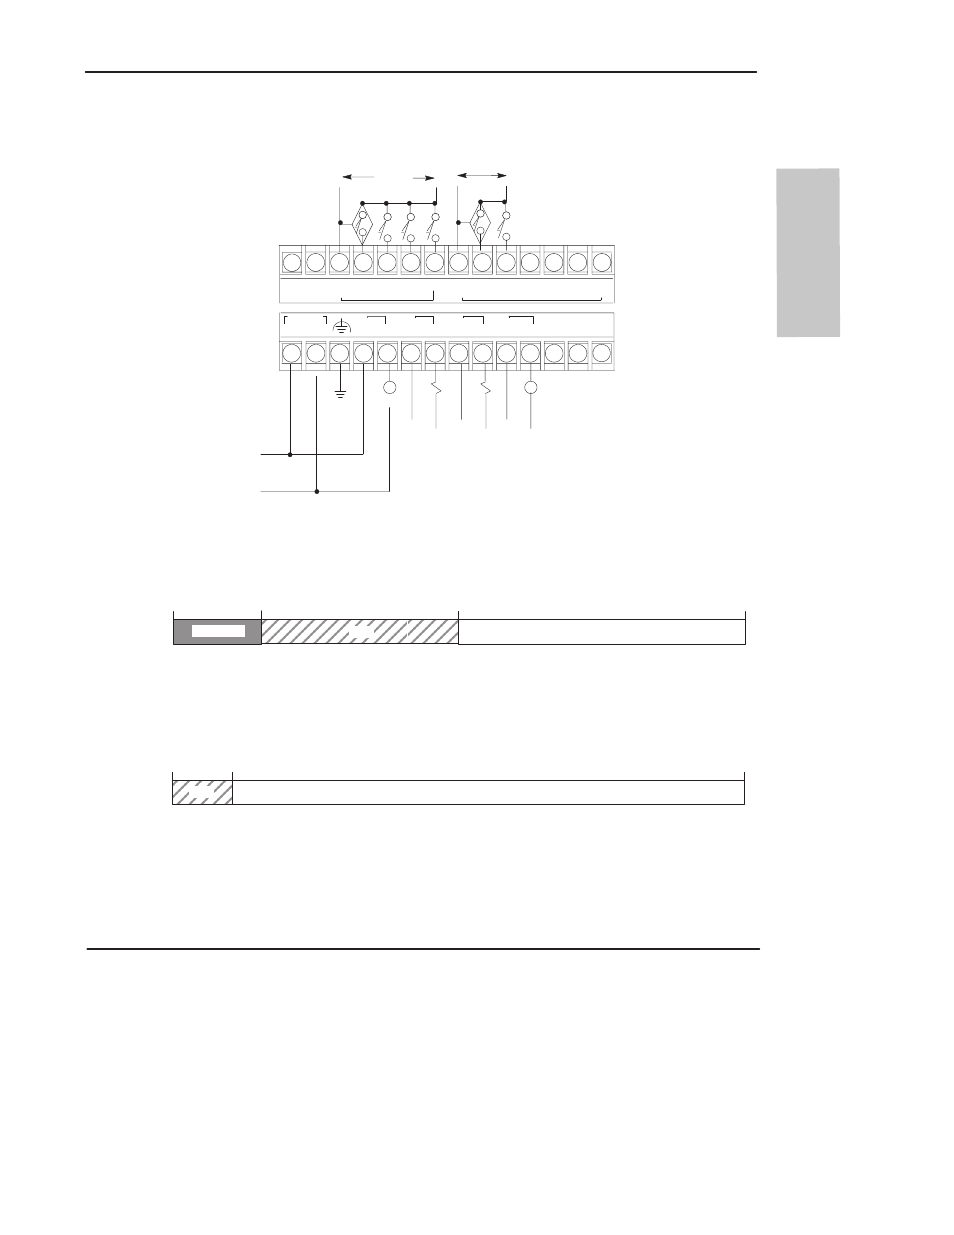 hight resolution of micrologix 1000 wiring diagram wiring libraryhardware preface rockwell automation 1761 micrologix 1000 programmable controllers user